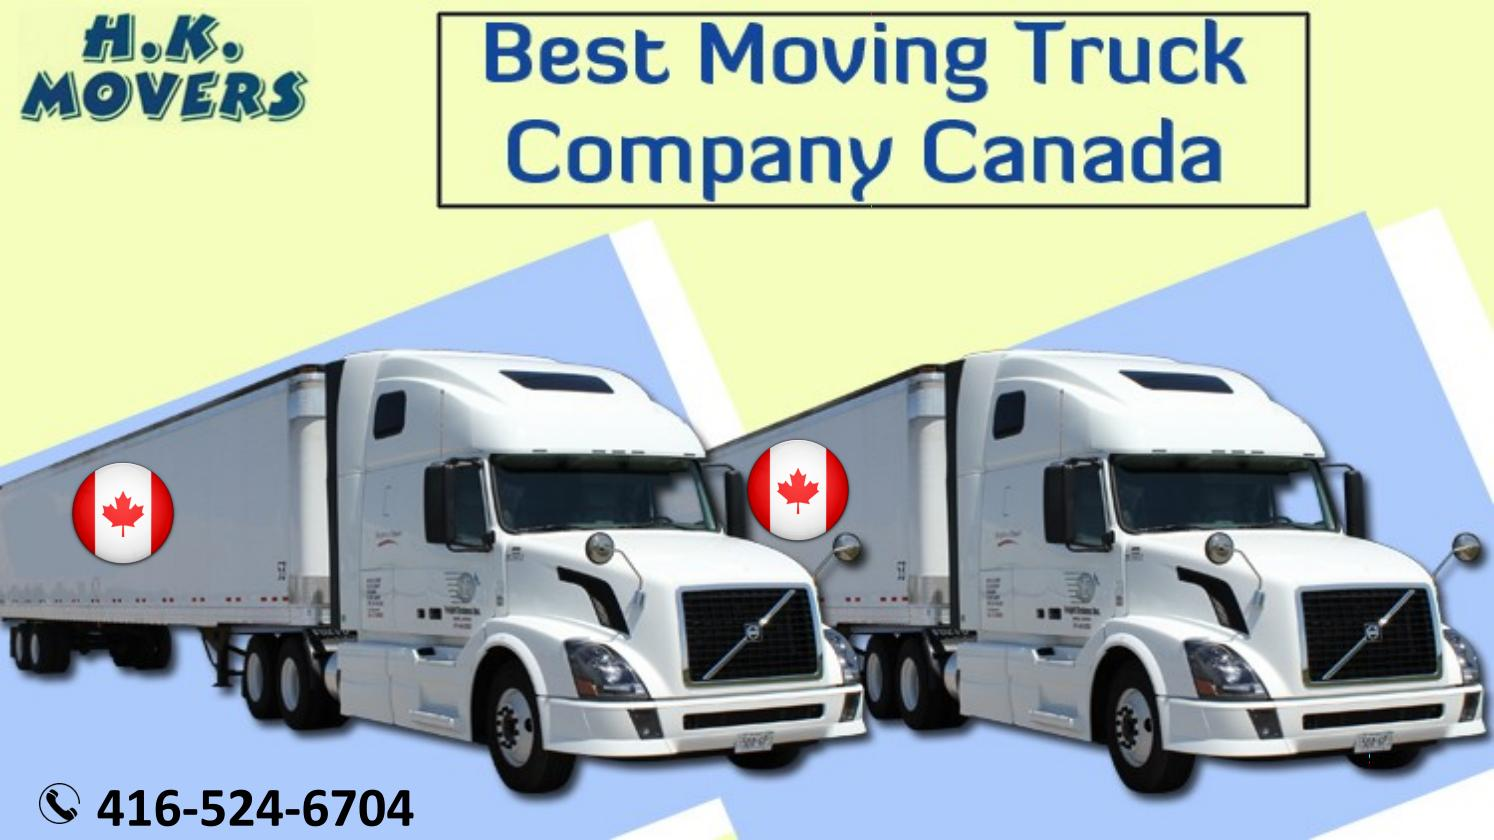 Best Moving Truck Company in Canada